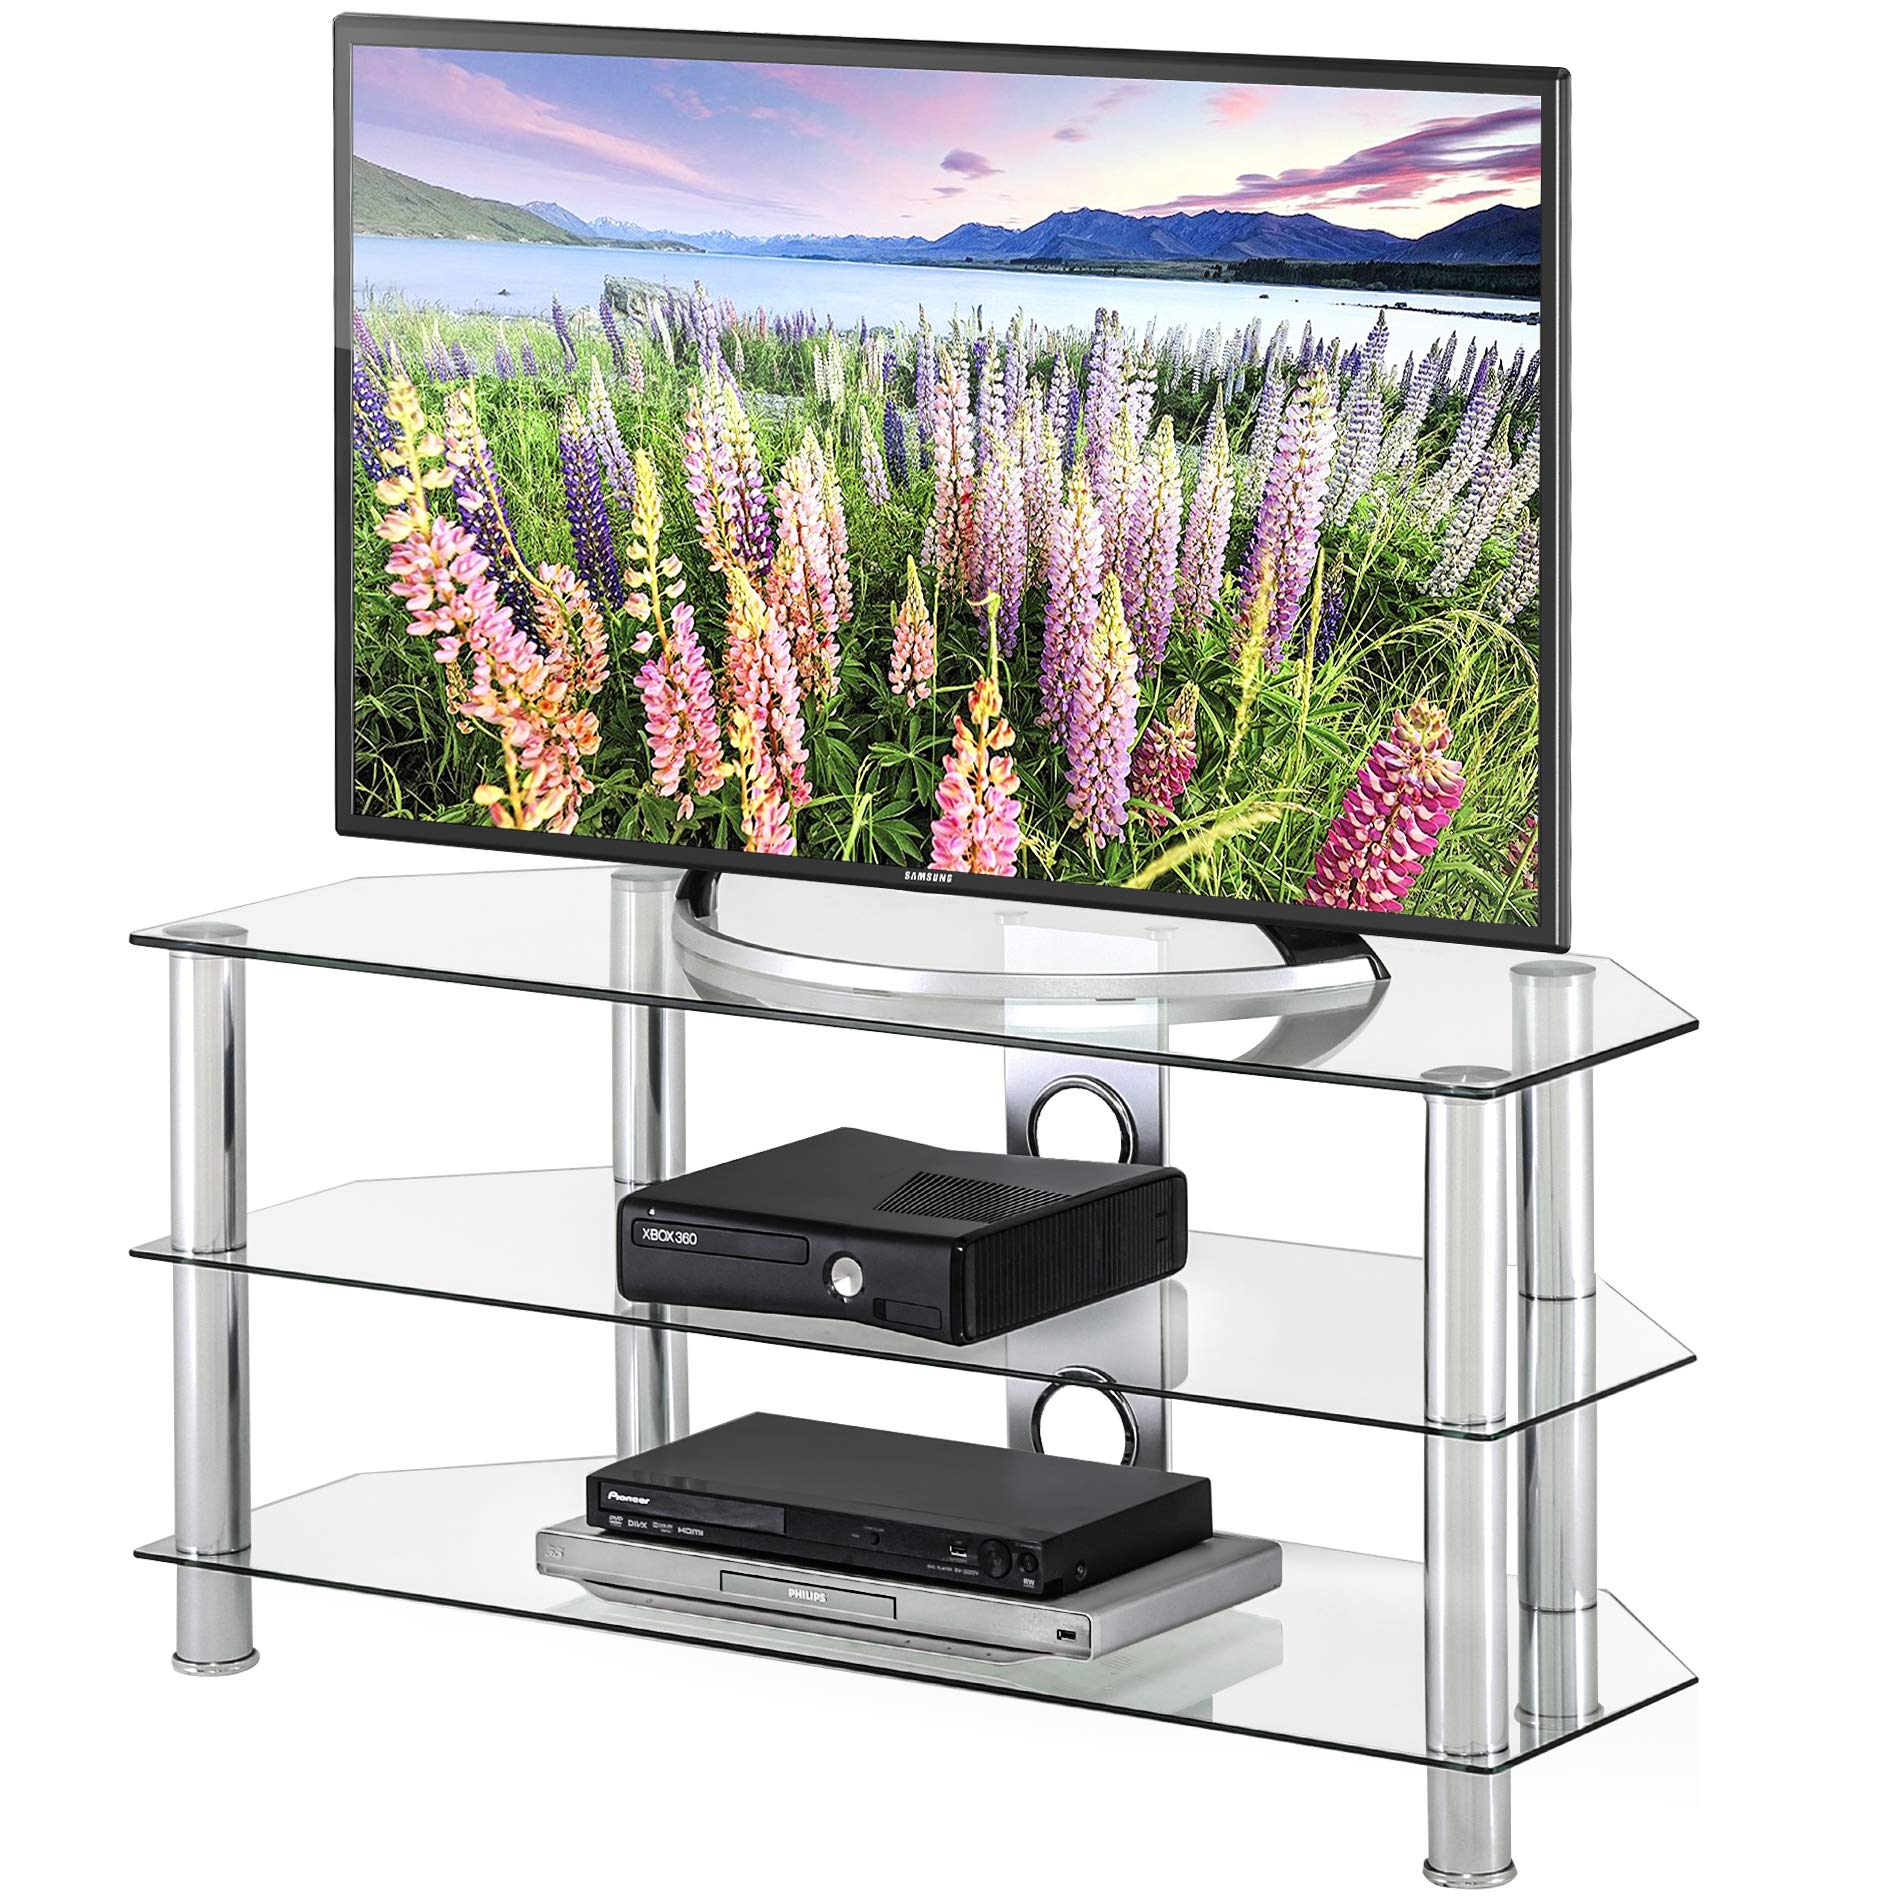 FITUEYES Classic Clear Tempered Glass TV Stand Suit for up to 46-inch LCD LED OLED TVS,TS310501GT by FITUEYES